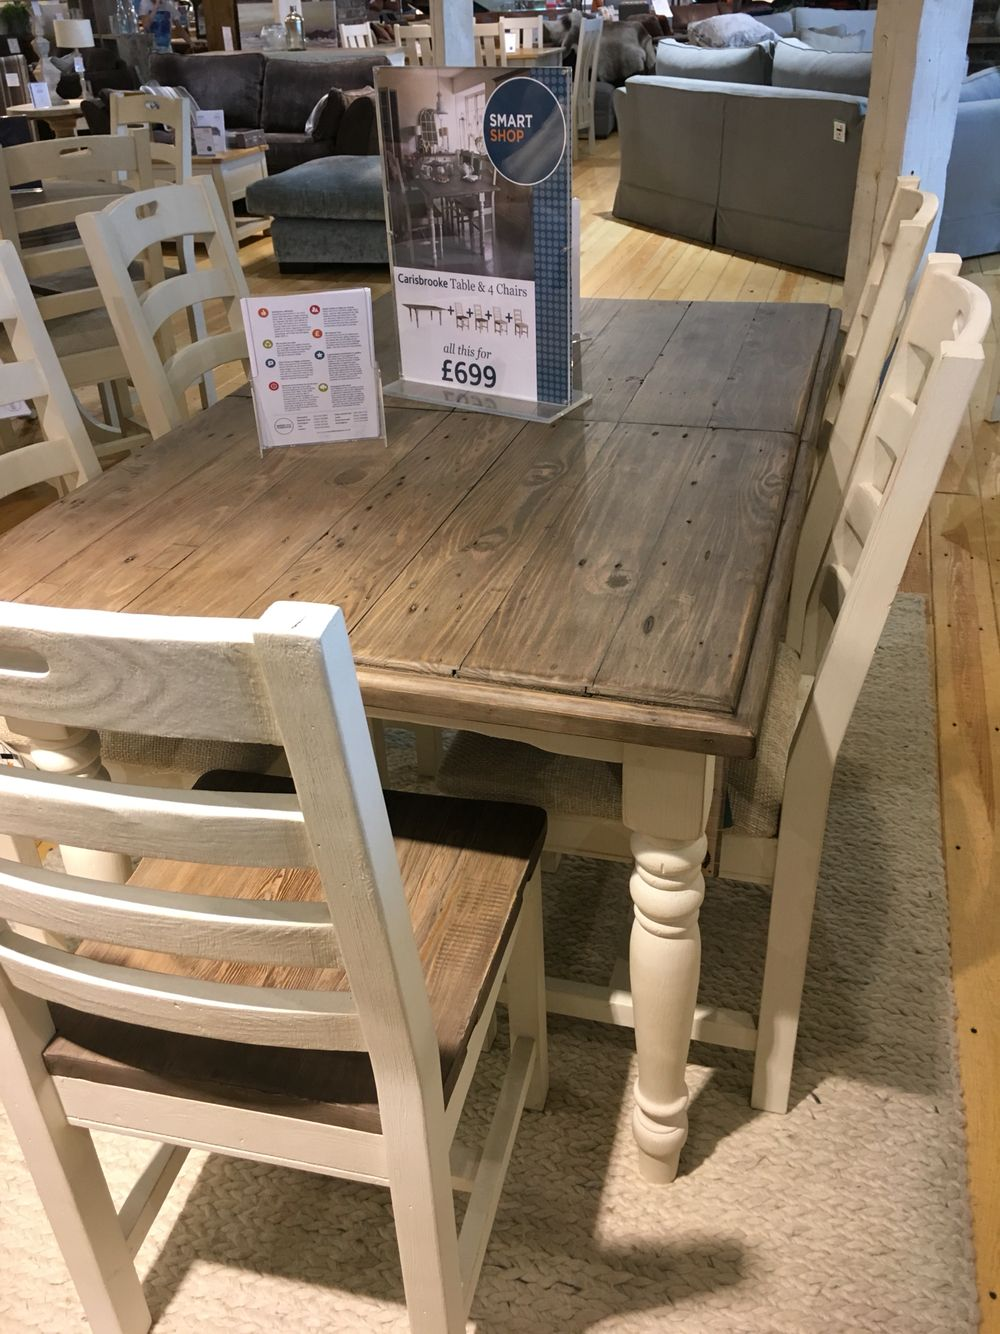 Carisbrooke Dining Table And Chairs From Barker And Stonehouse | House:  Kitchen | Pinterest | Bedrooms, Kitchens And House